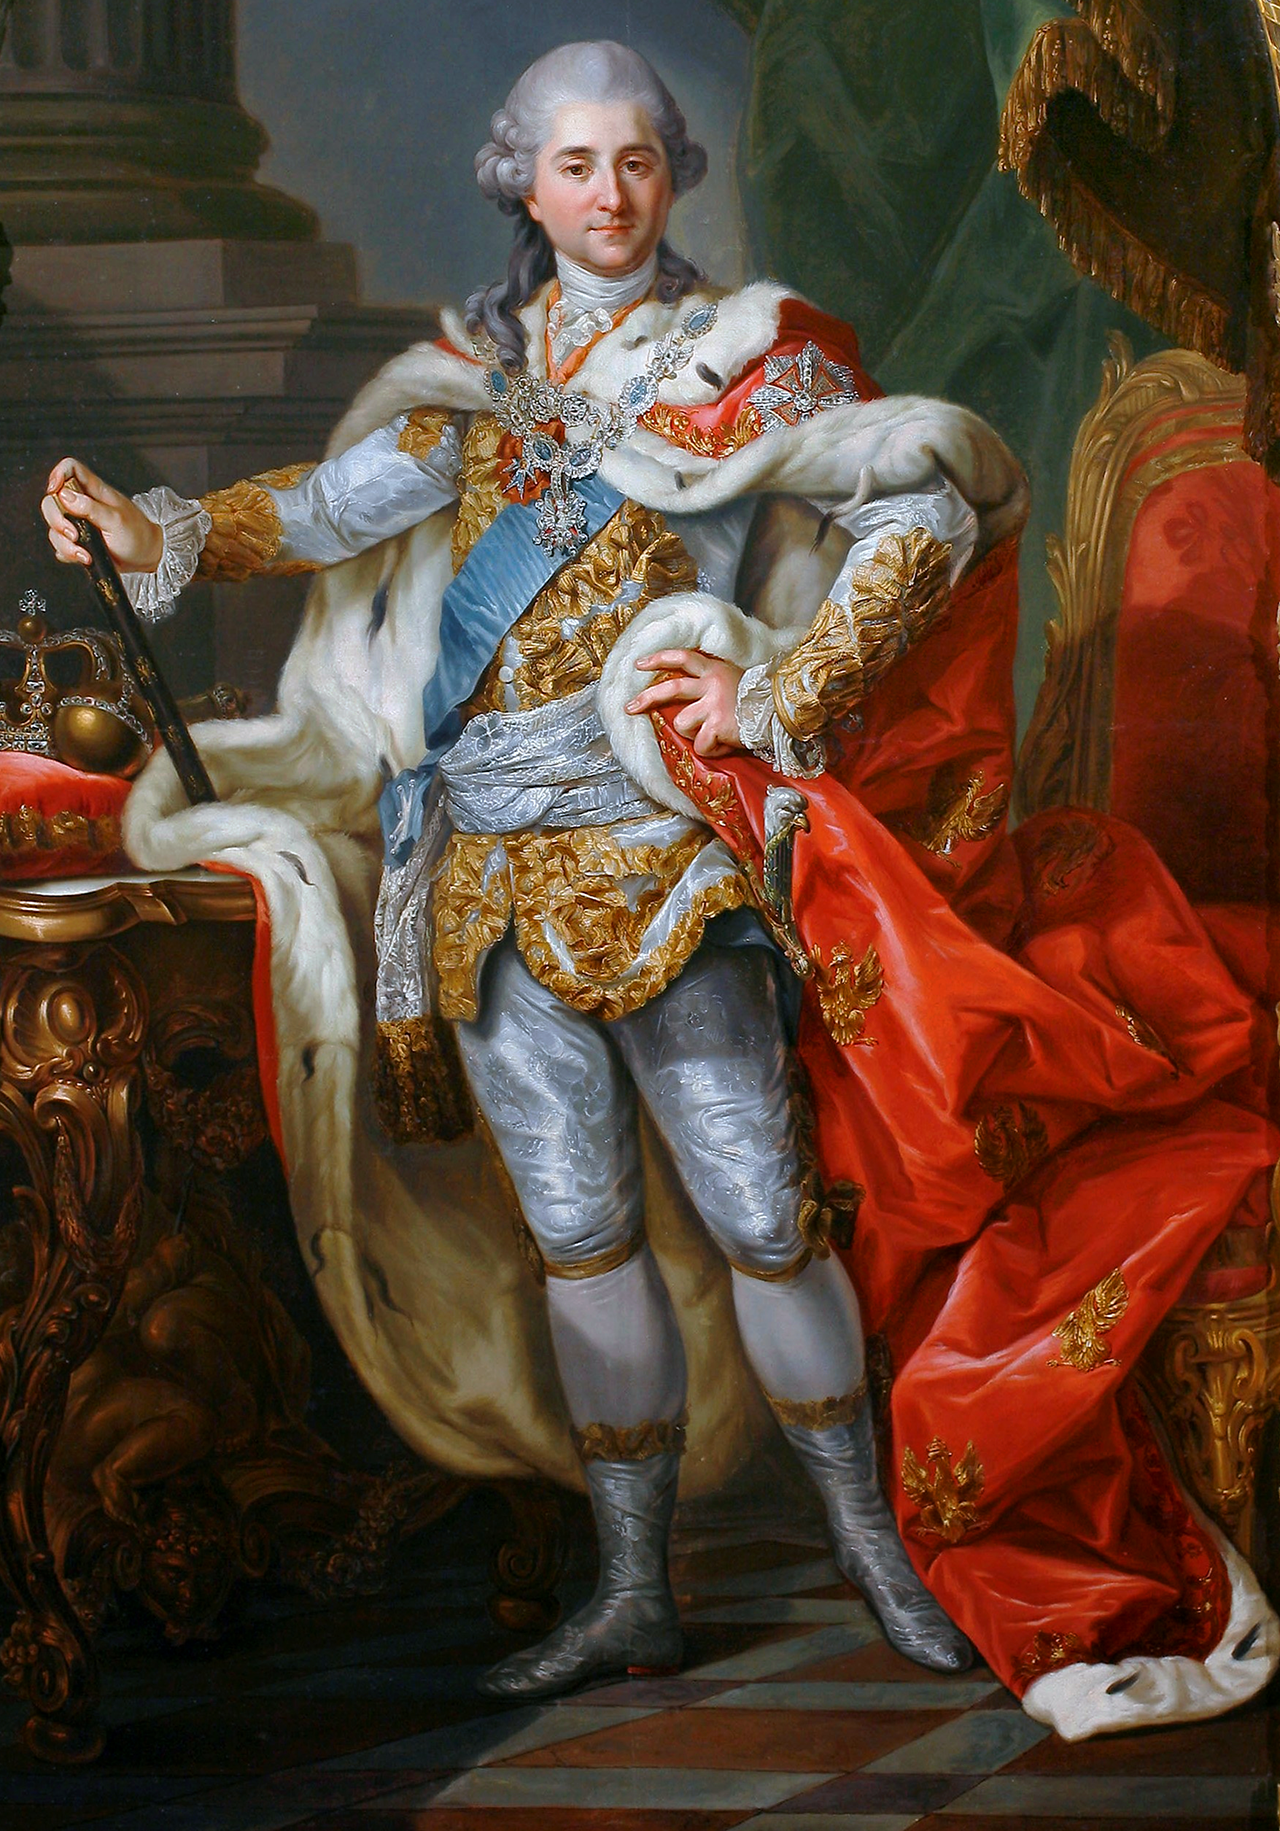 may Stanisław_II_August_Poniatowski_in_coronation_clothes